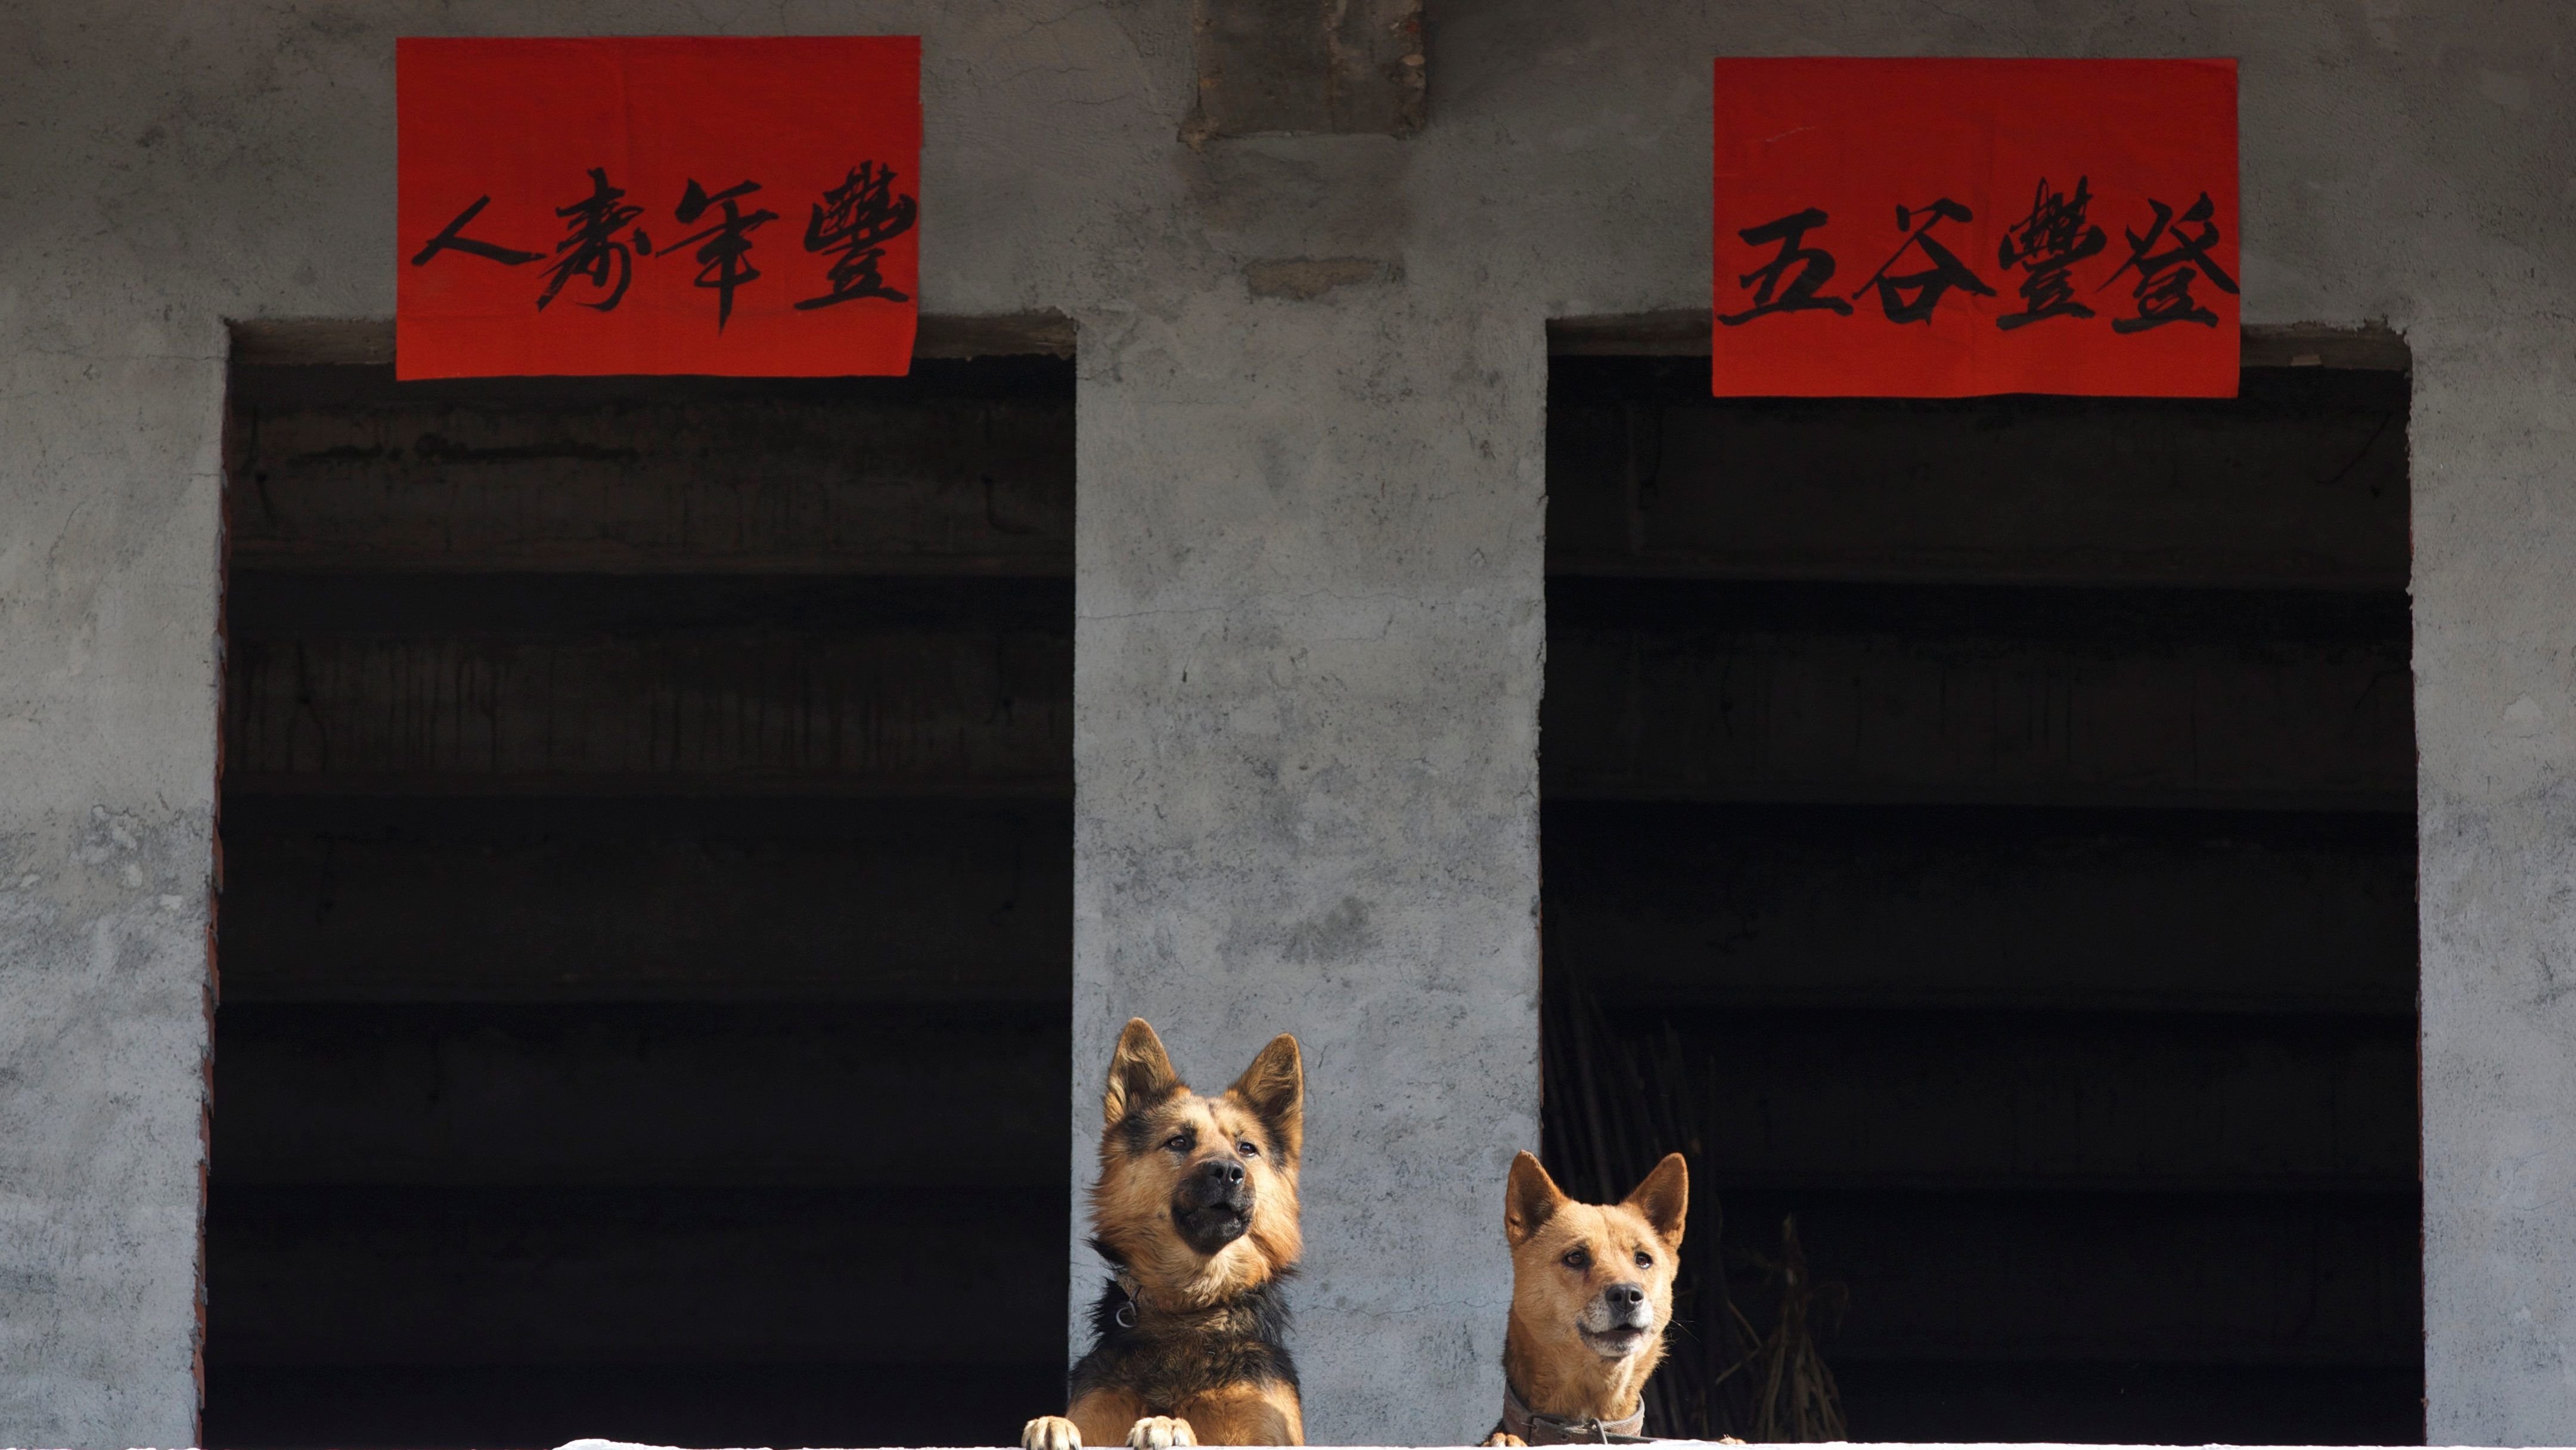 Dogs are seen subsequent to Lunar New Year decorations during a jubilee forward of Year of a Dog in Jinhua, Zhejiang province, China Jan 16, 2018. Picture taken Jan 16, 2018. Yang Meiqing around REUTERS